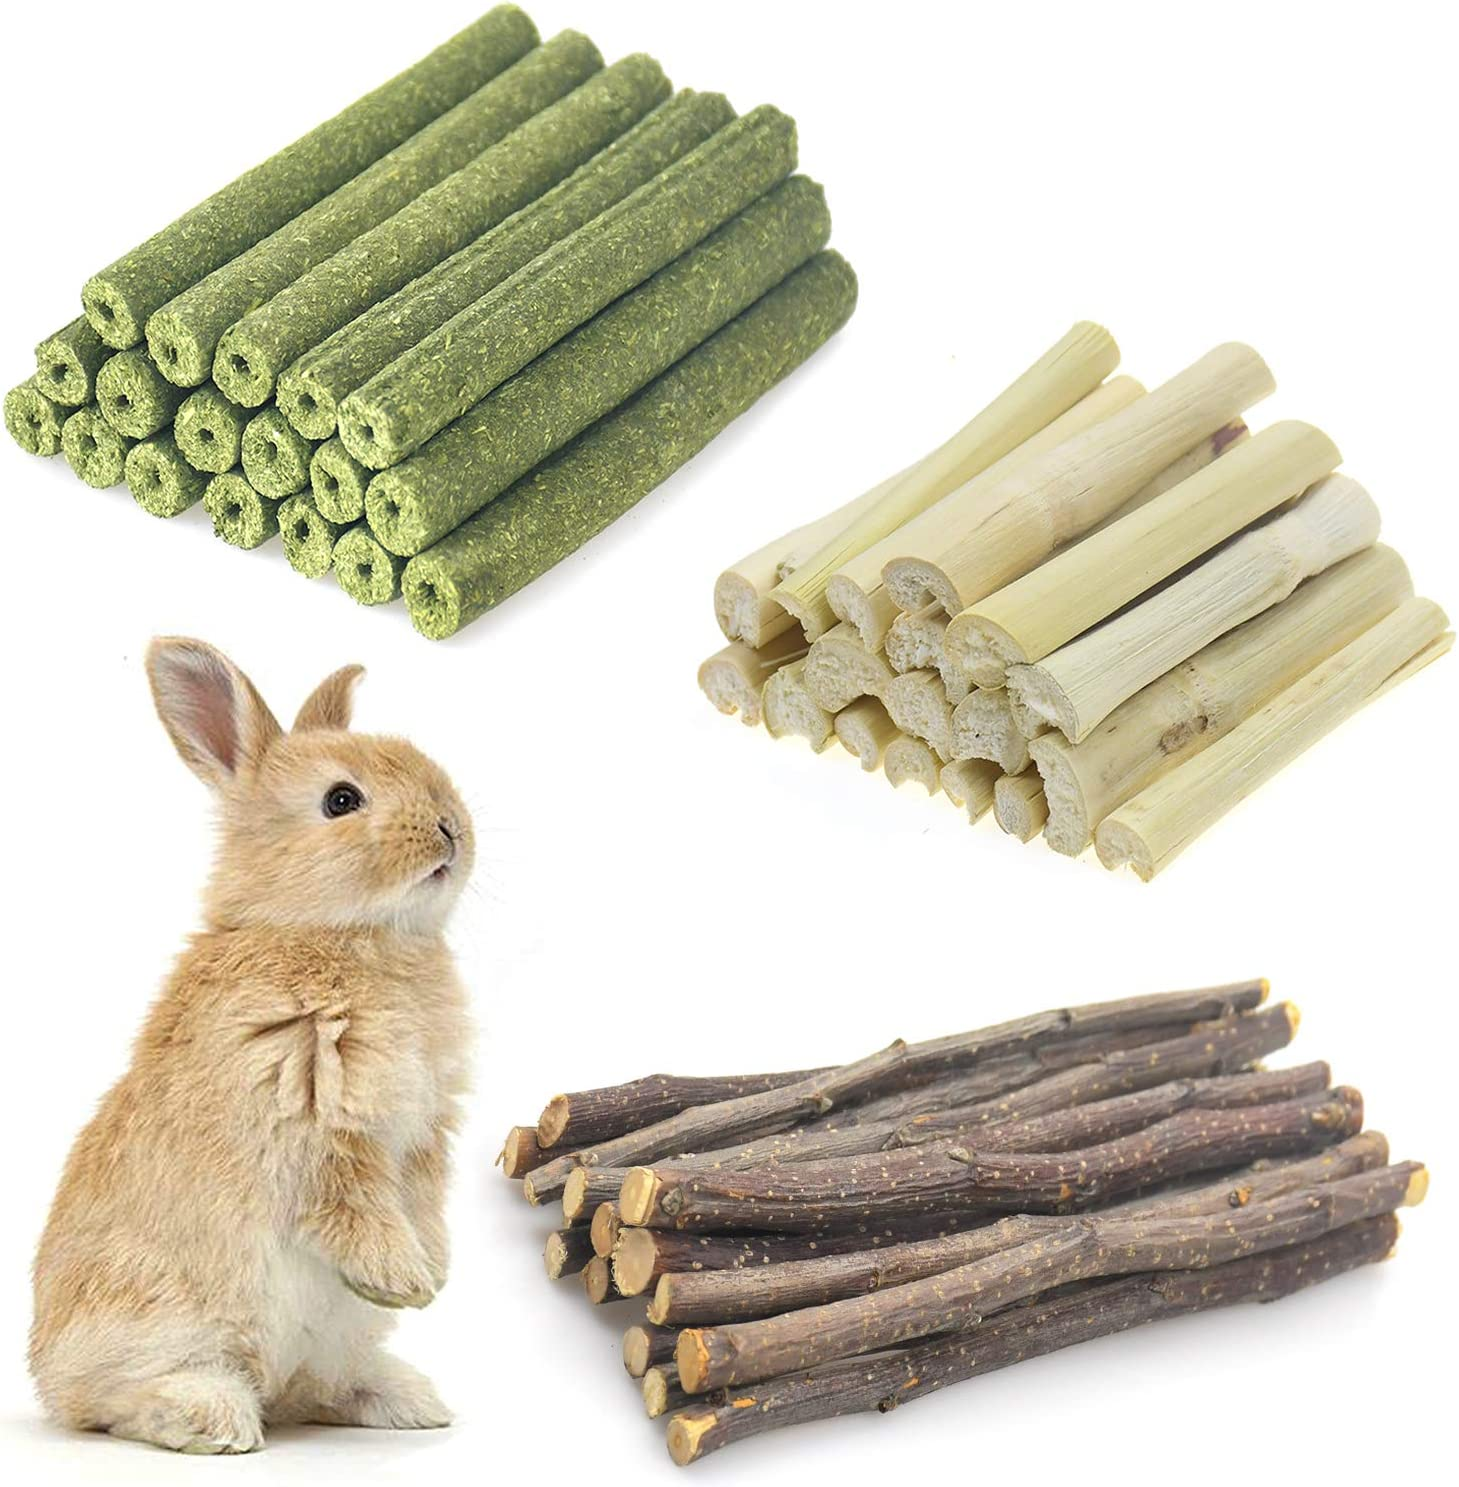 Changeary 150g and 300g Small Animals Chew Toys Molar Sticks, Apple Sticks Timothy Hay Sticks Sweet Bamboo Combined for Rabbit Chinchilla Guinea Pigs Squirrel Hamster …